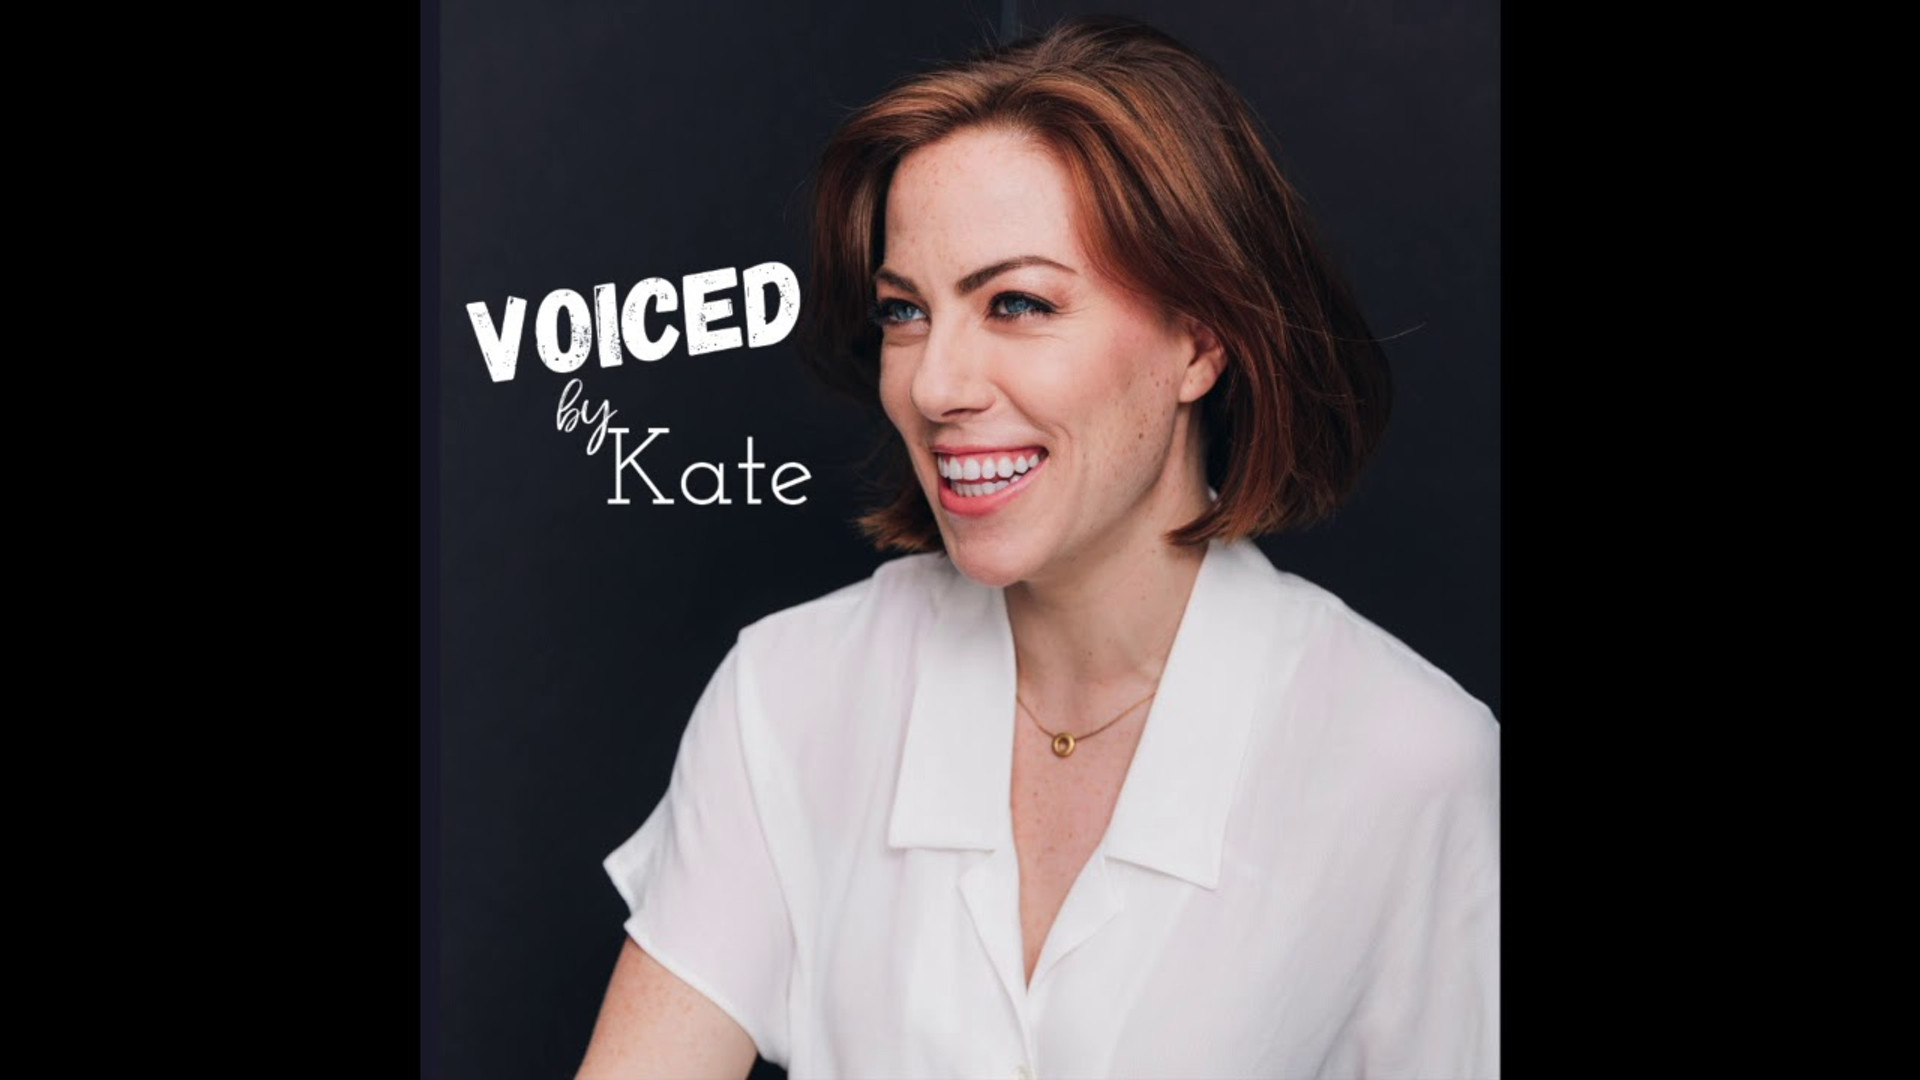 Kate's Voiceover Reel